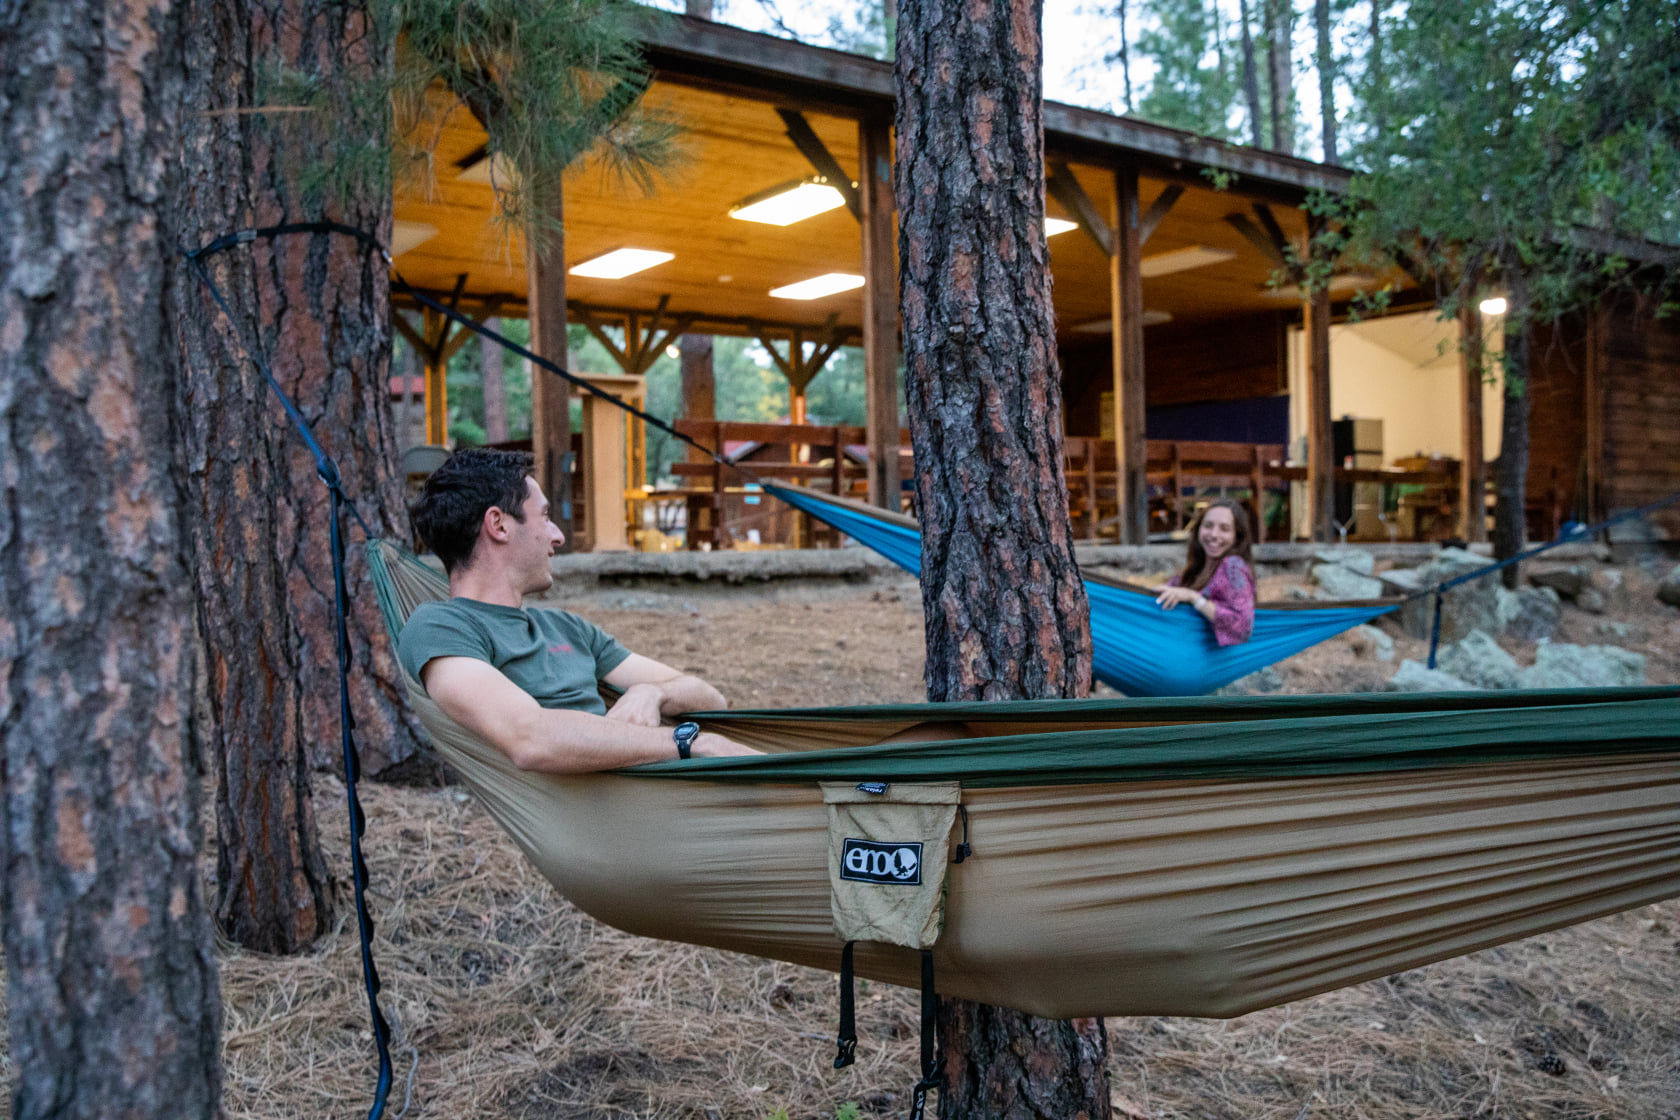 Students laying in ENO hammocks, outside of an open air building at A Place Beyond located in Prescott National Forest.